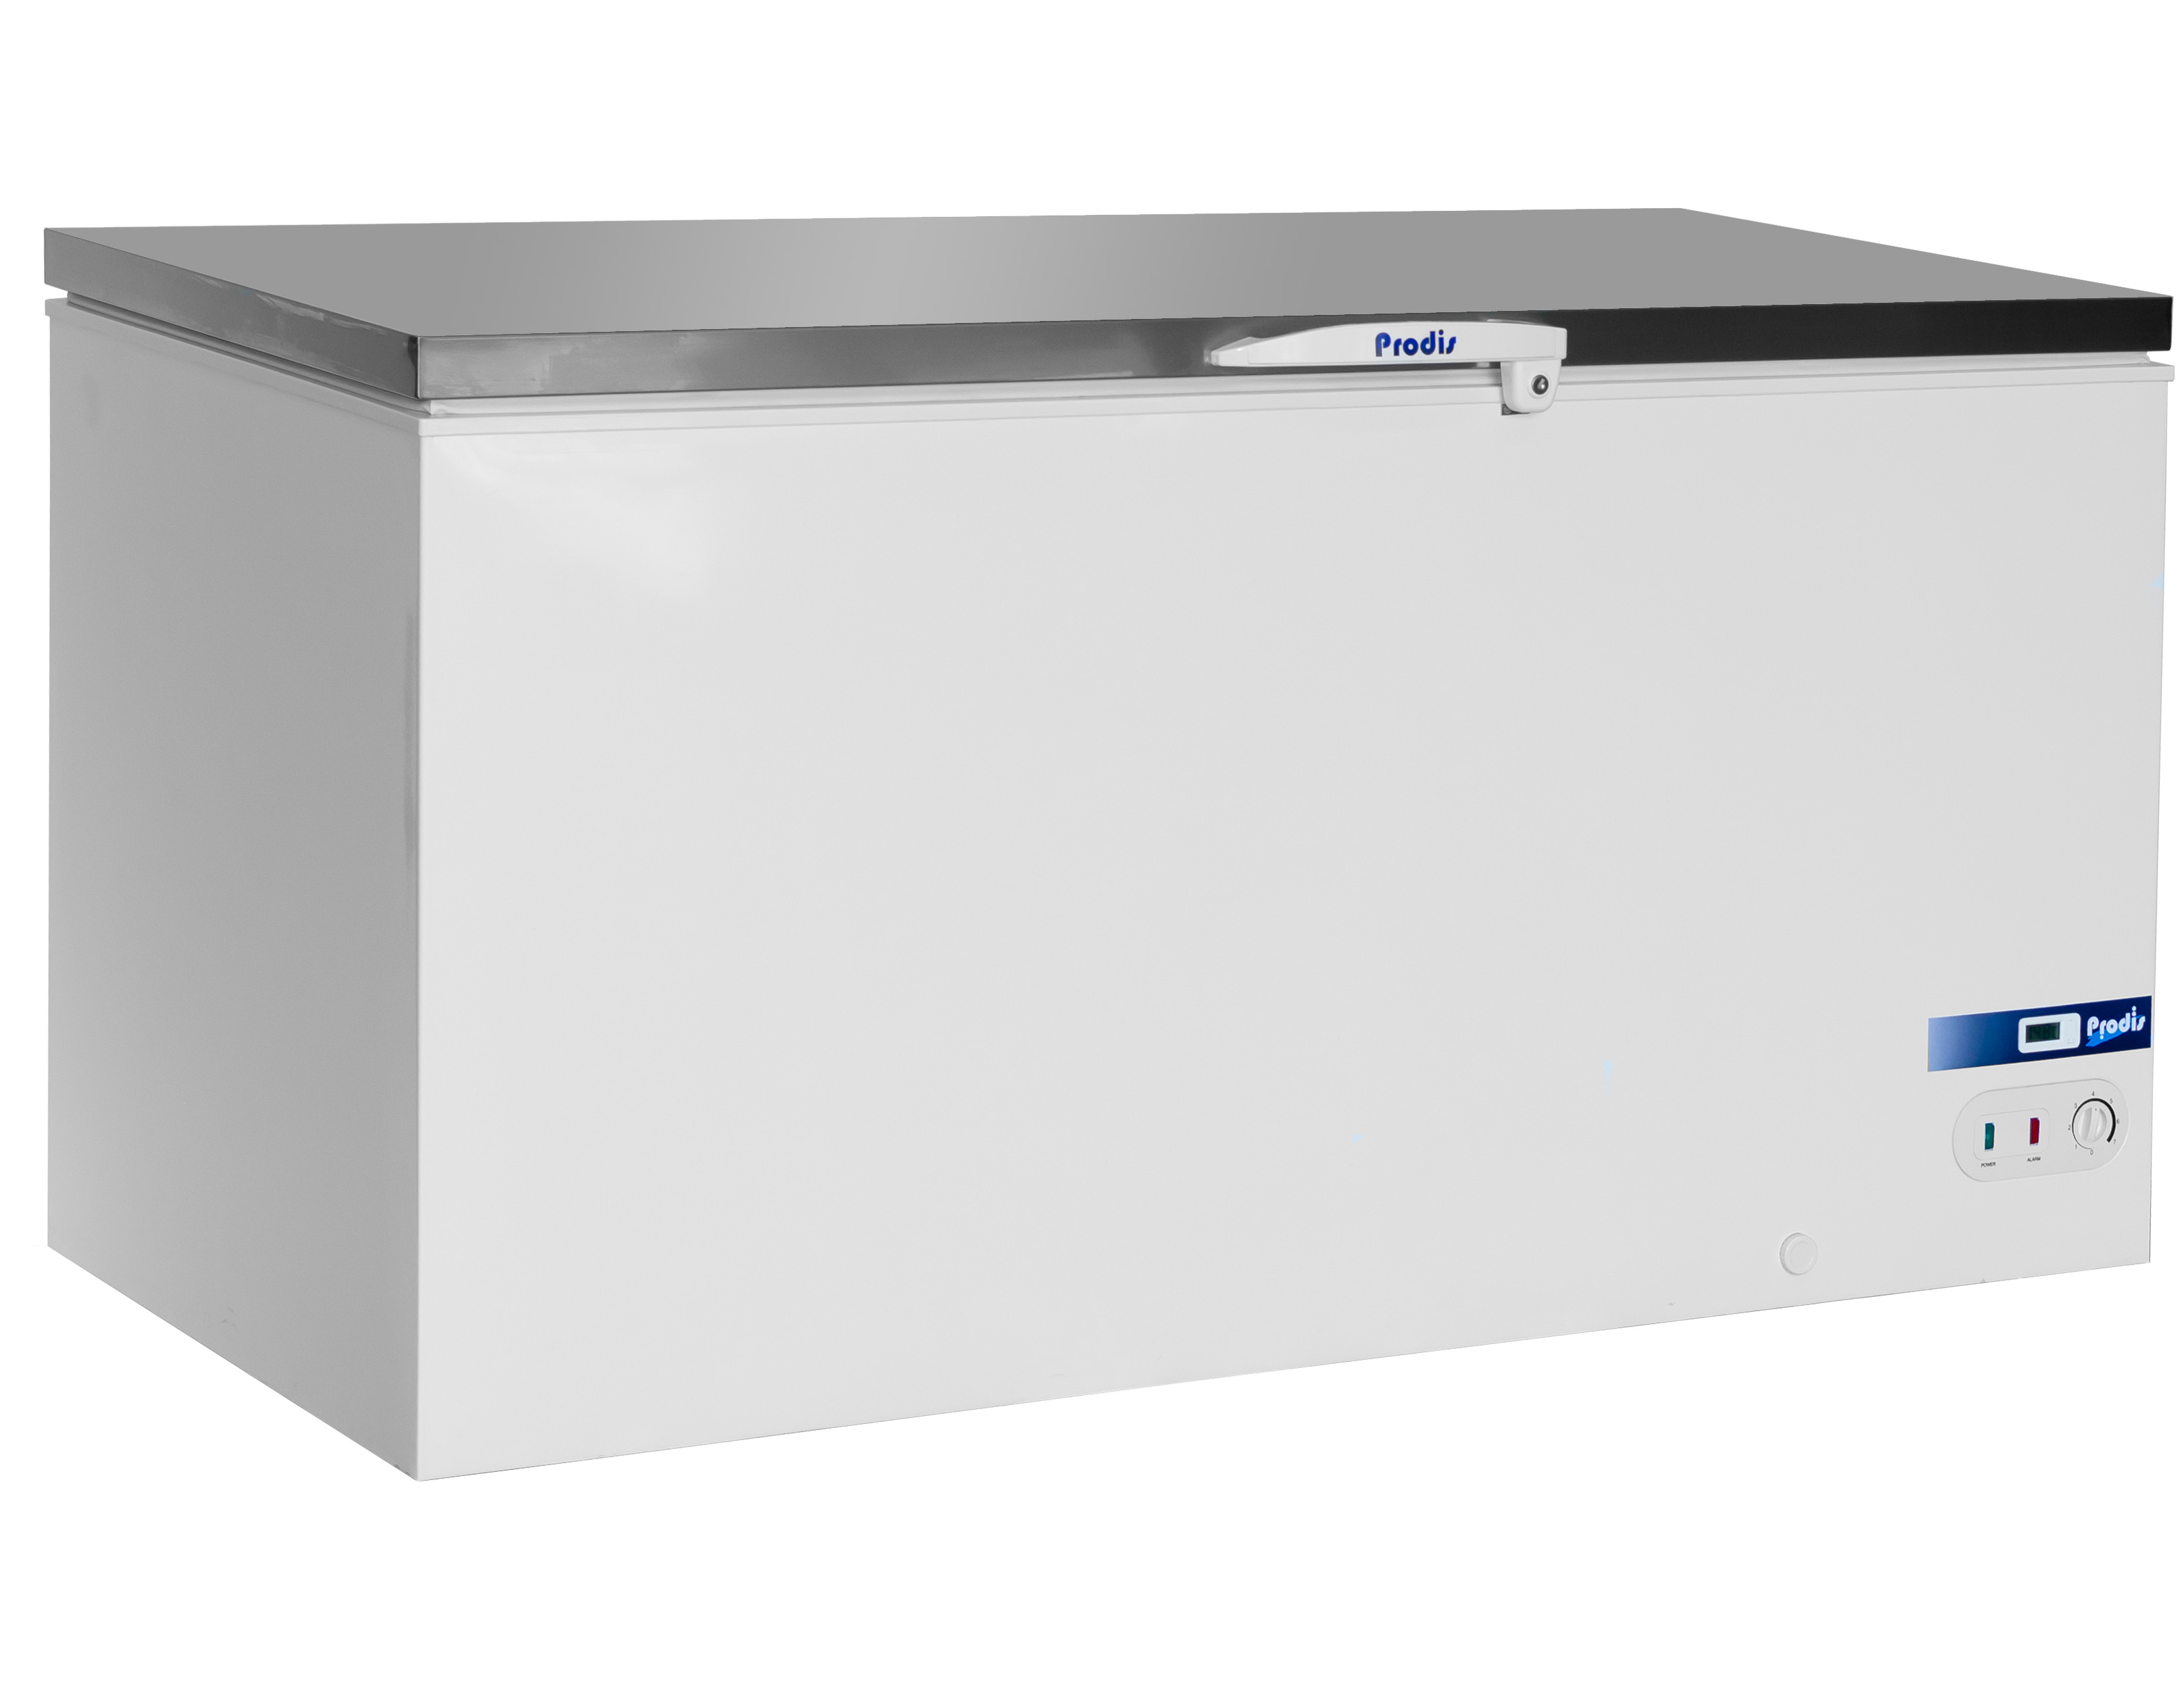 Prodis Arctic AR550SS, Stainless Steel Lid Chest Freezer, 550 Litres, 5 Year Full Warranty